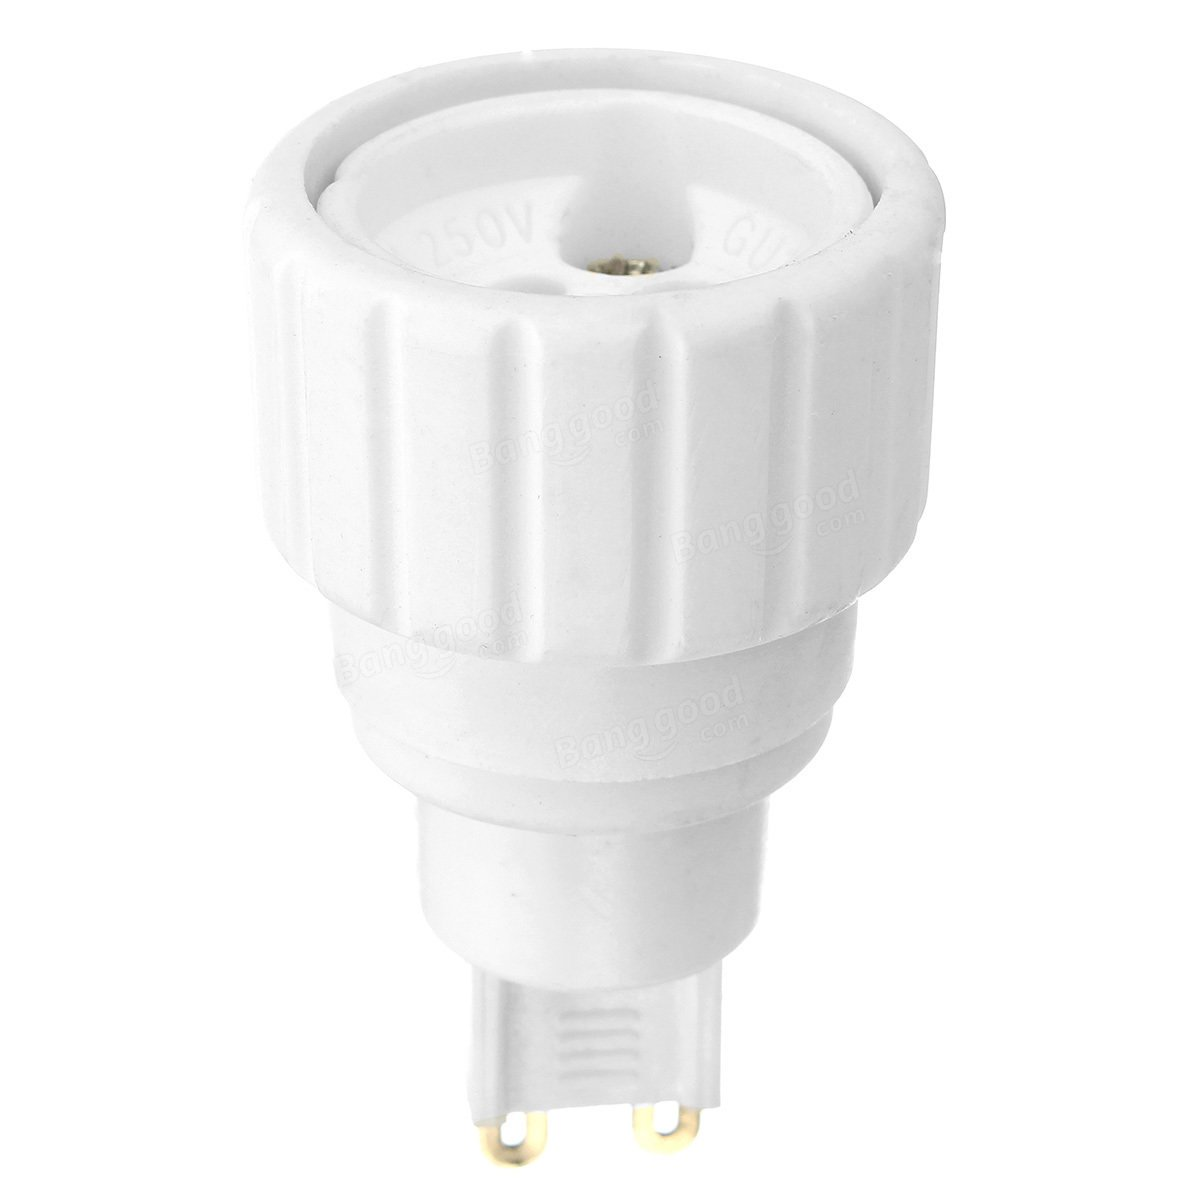 Bazaar G9 To GU10 LED Light Bulb Base Screw Adapter Holder Socket Converter 220V 5A Big Bazaar B01N53780Z